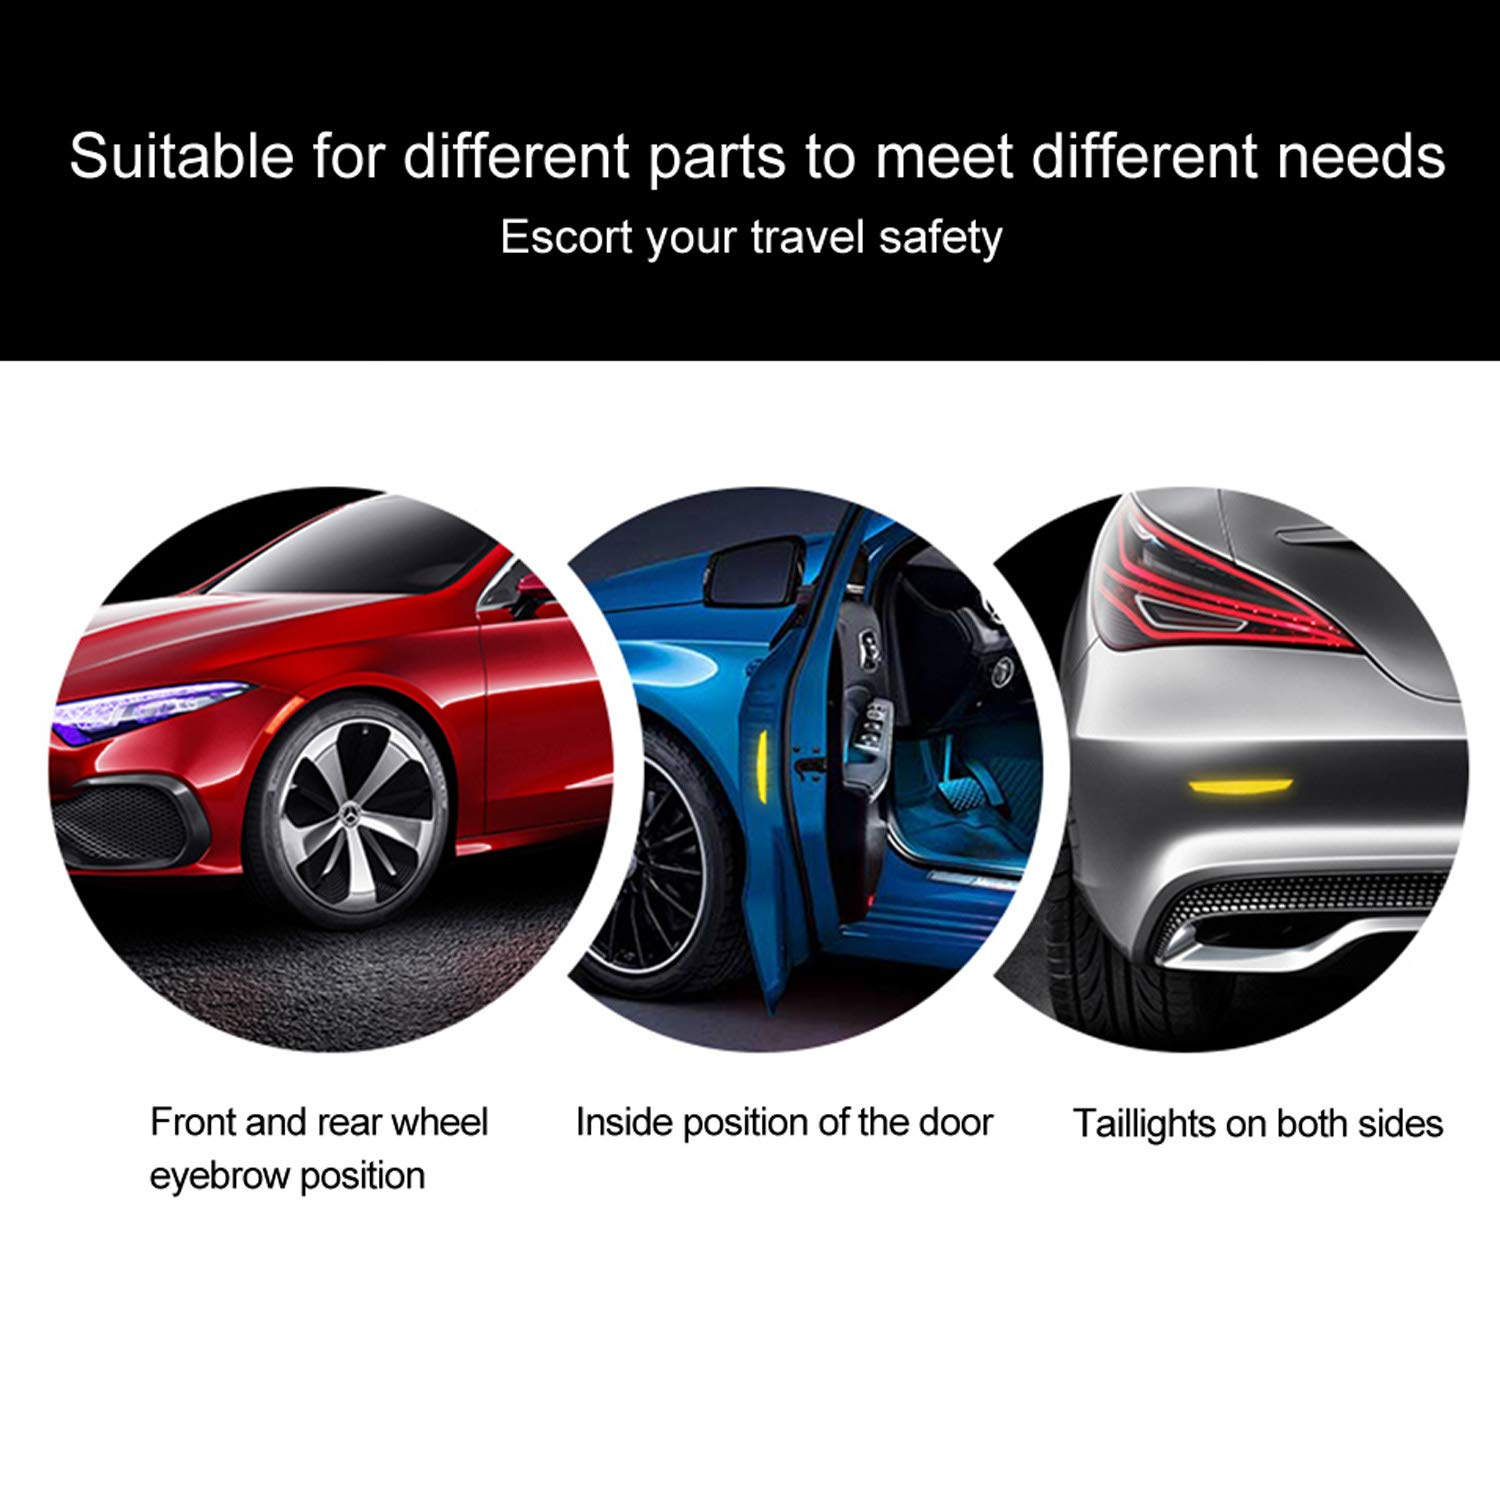 LOCEN Car Reflective Warning Sticker Wheel Side Door Edge Bumper Strip Protection Waterproof for Universal Household Appliances Buses - 2 Pack - Red